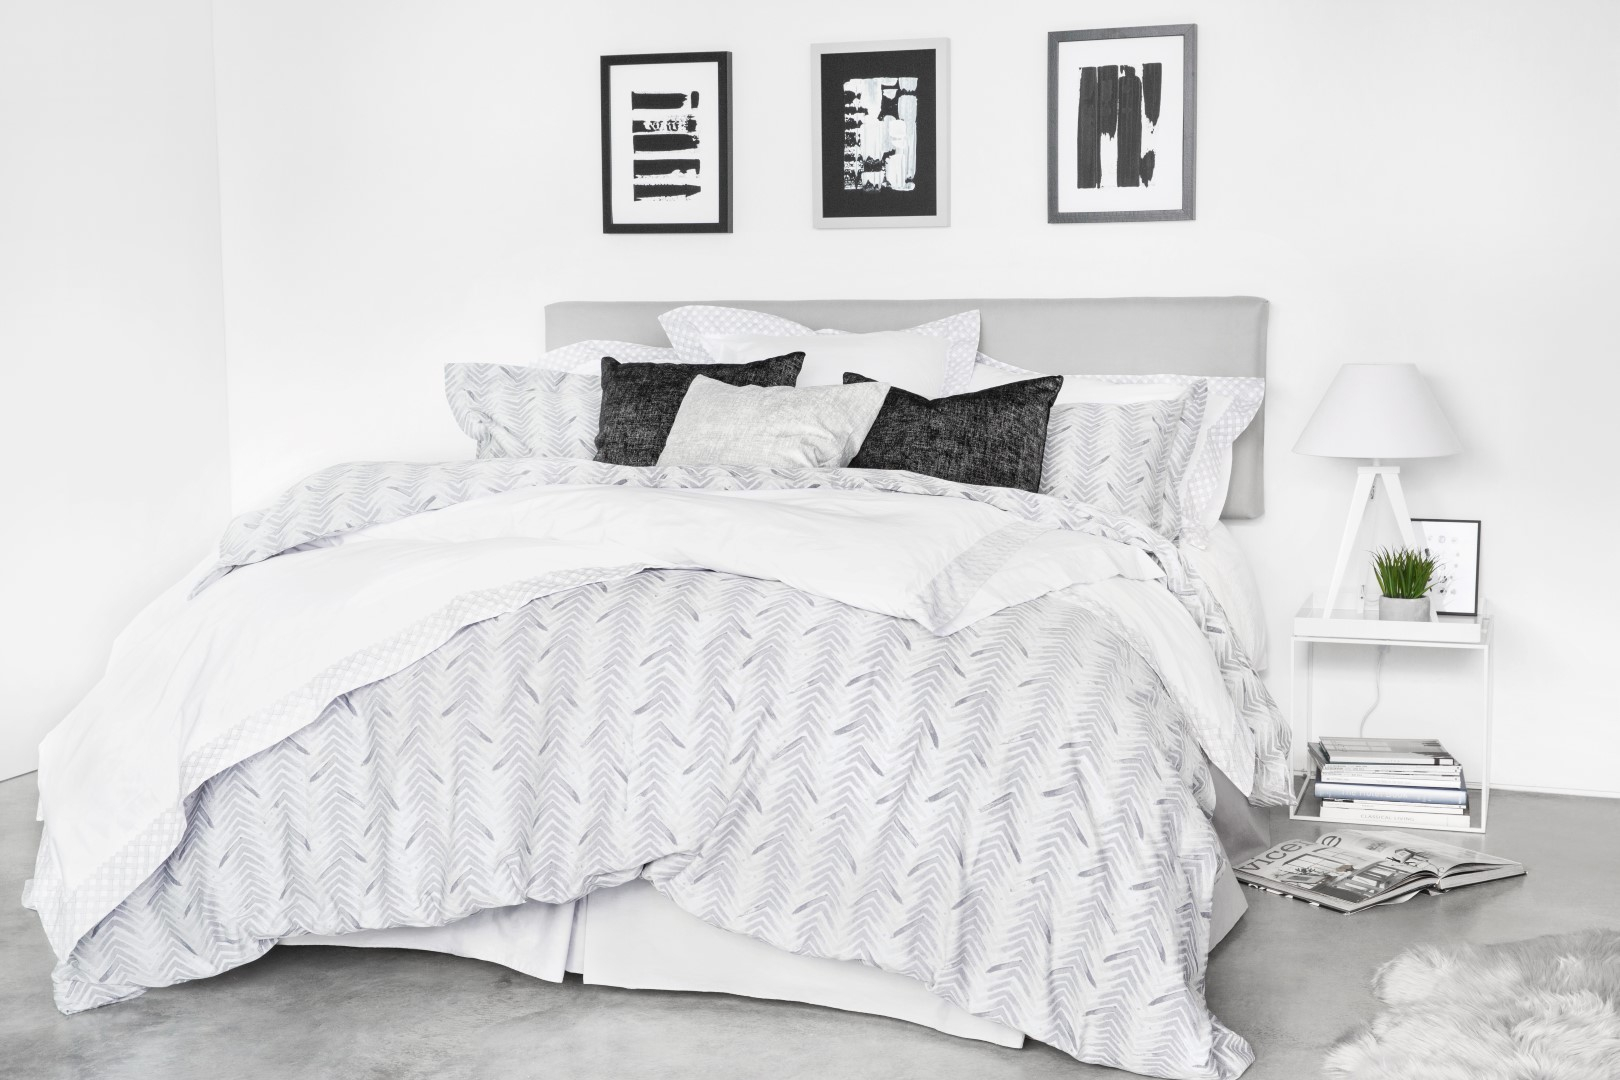 Bedroom Decorating Ideas 20 Must See Styles For Your Bedroom inside 15 Awesome Ways How to Makeover Modern Bedroom Ideas